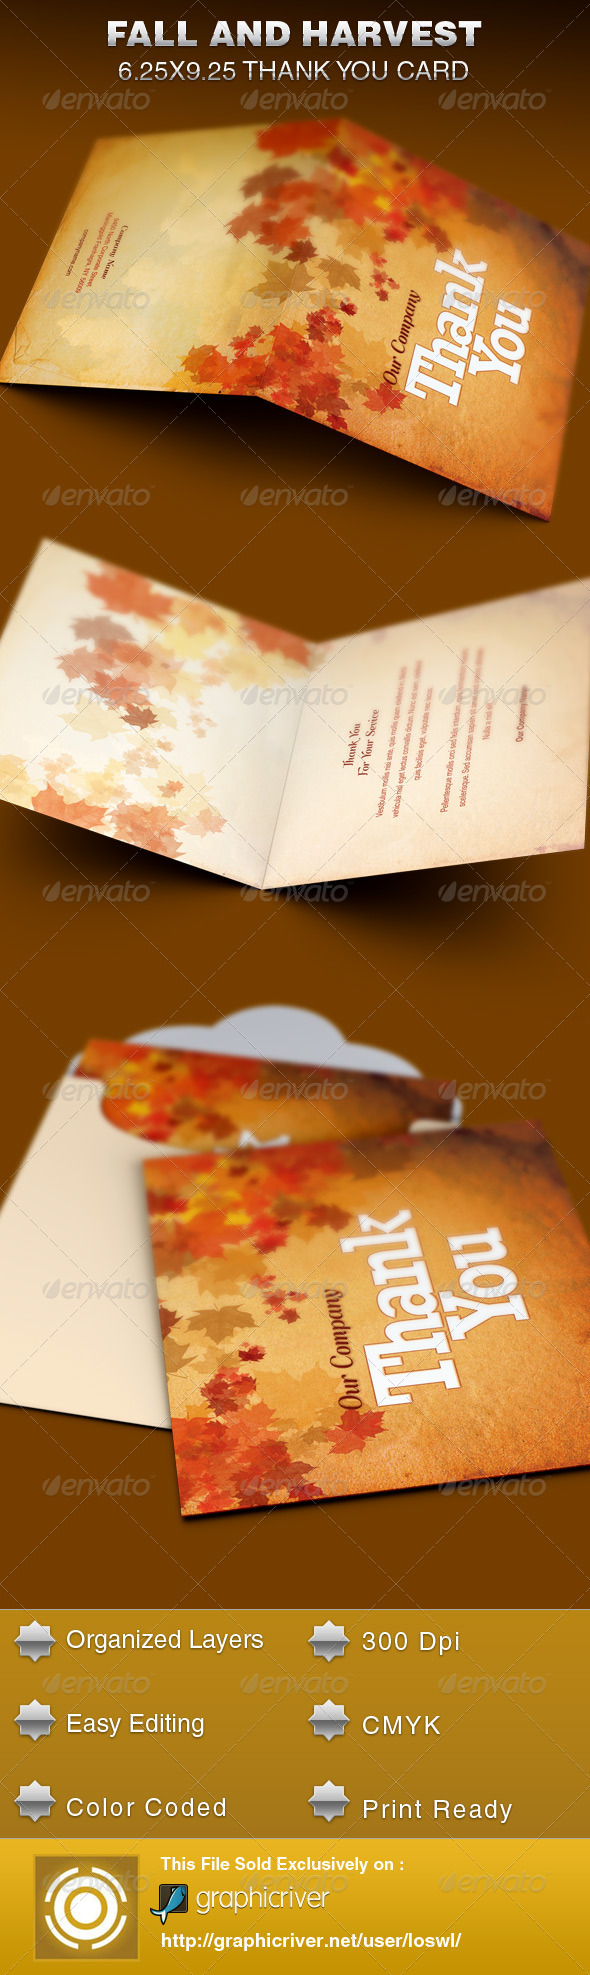 Fall and Harvest Thank You Card Template - Cards & Invites Print Templates